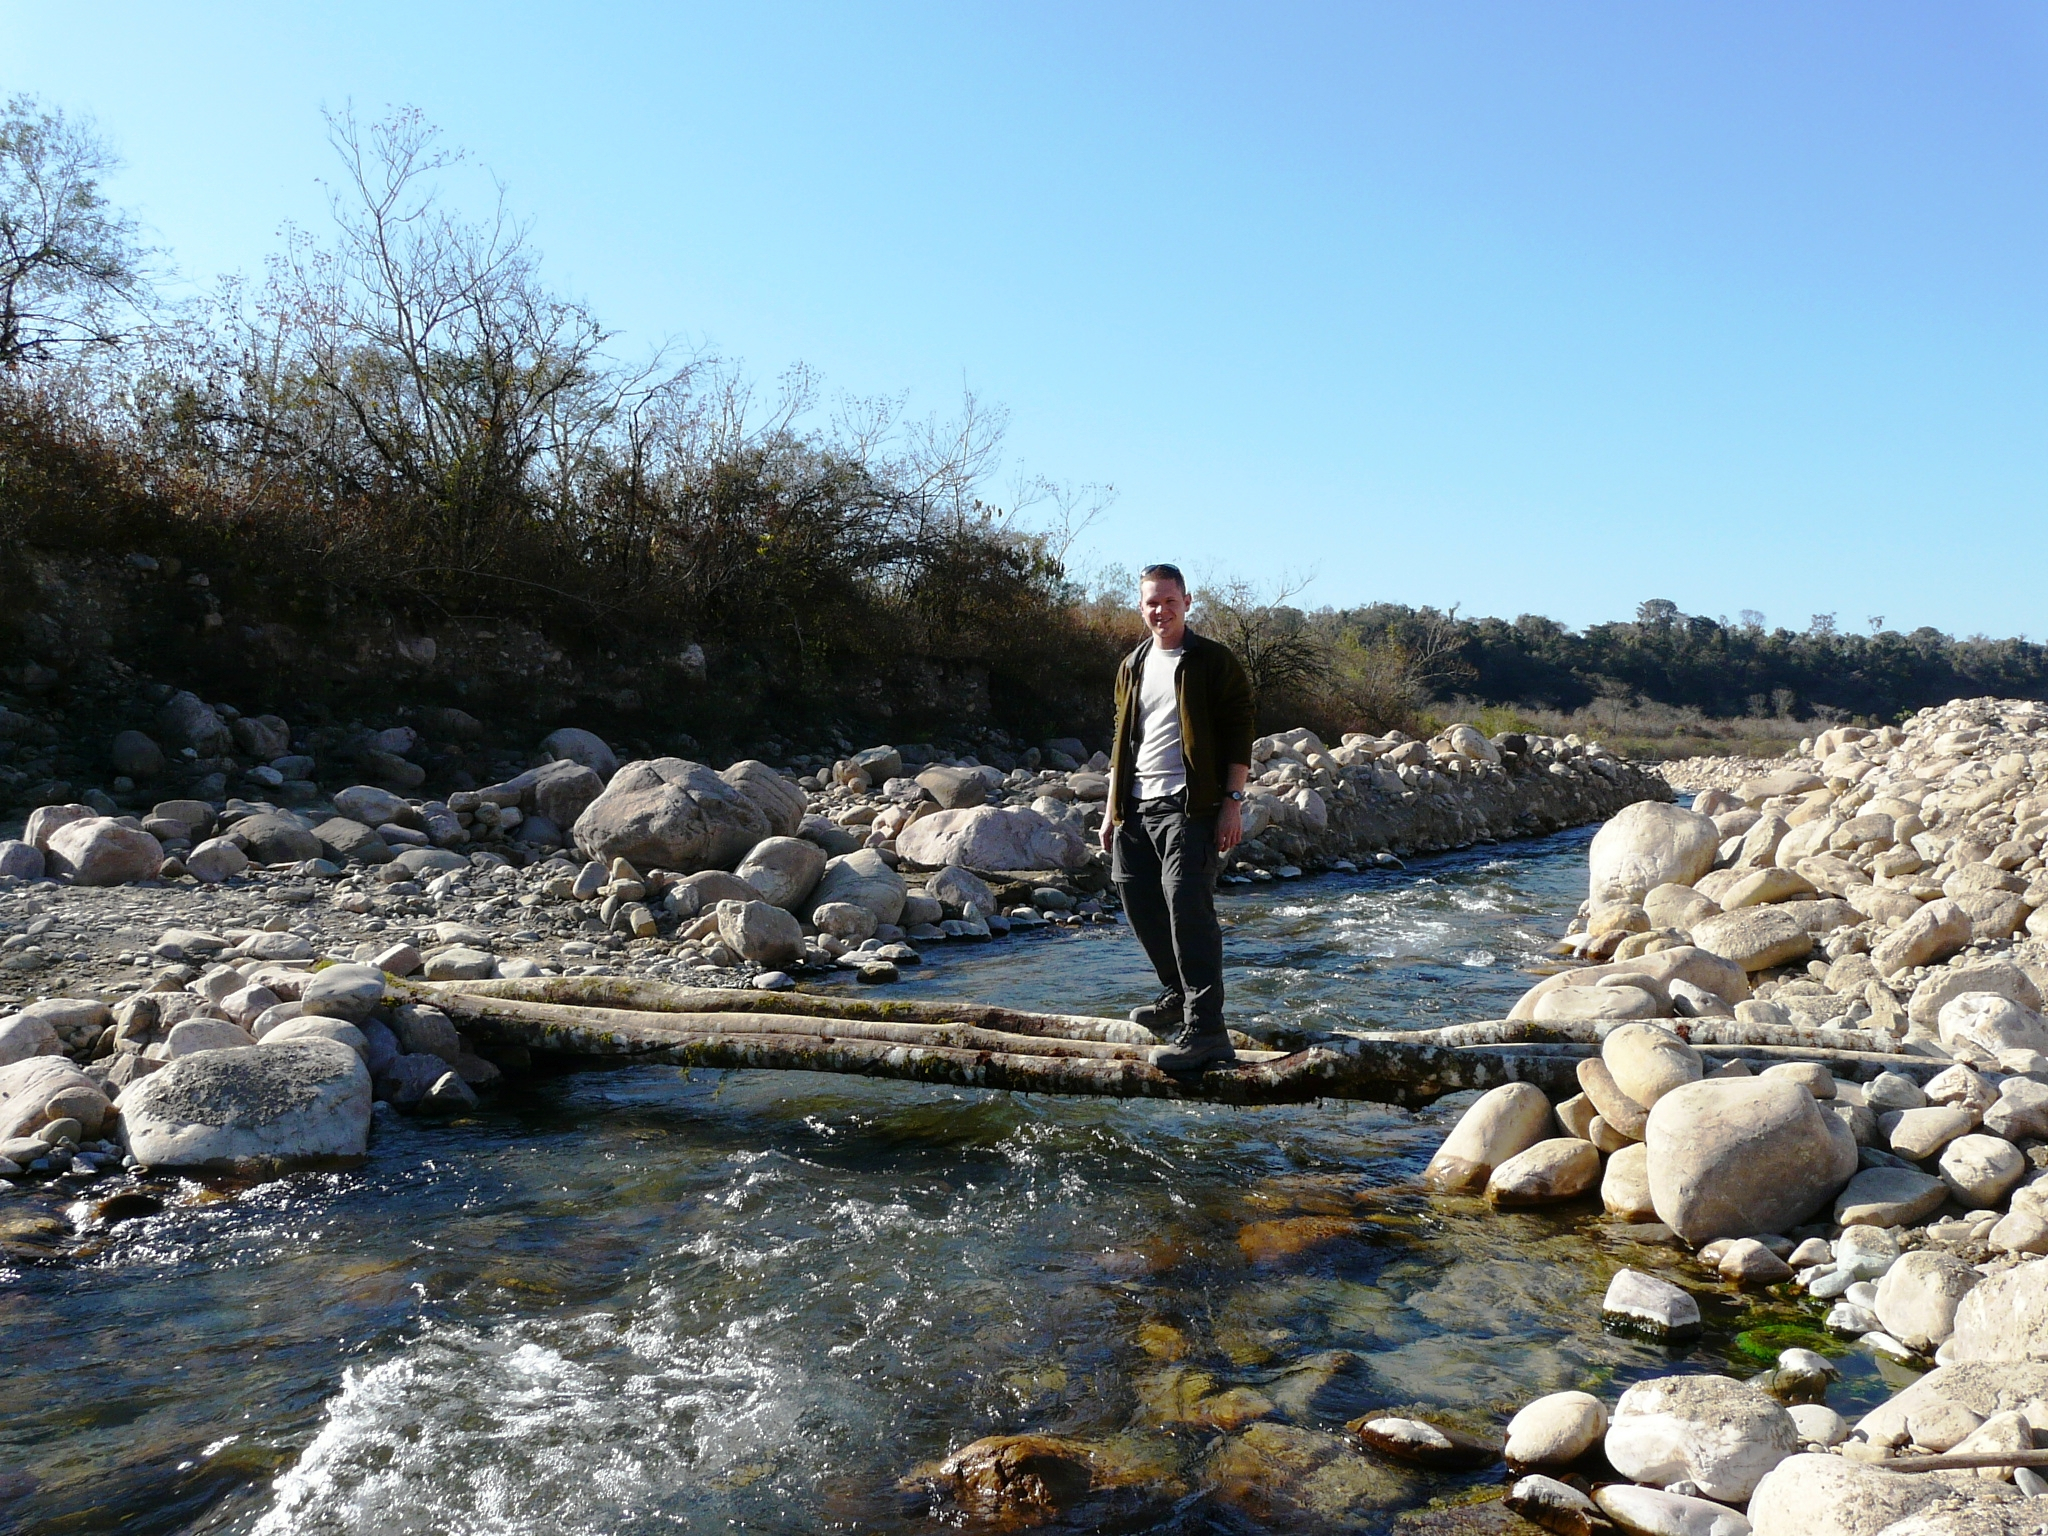 Crossing a branch of the Iruya River--this is only possible during the dry season!